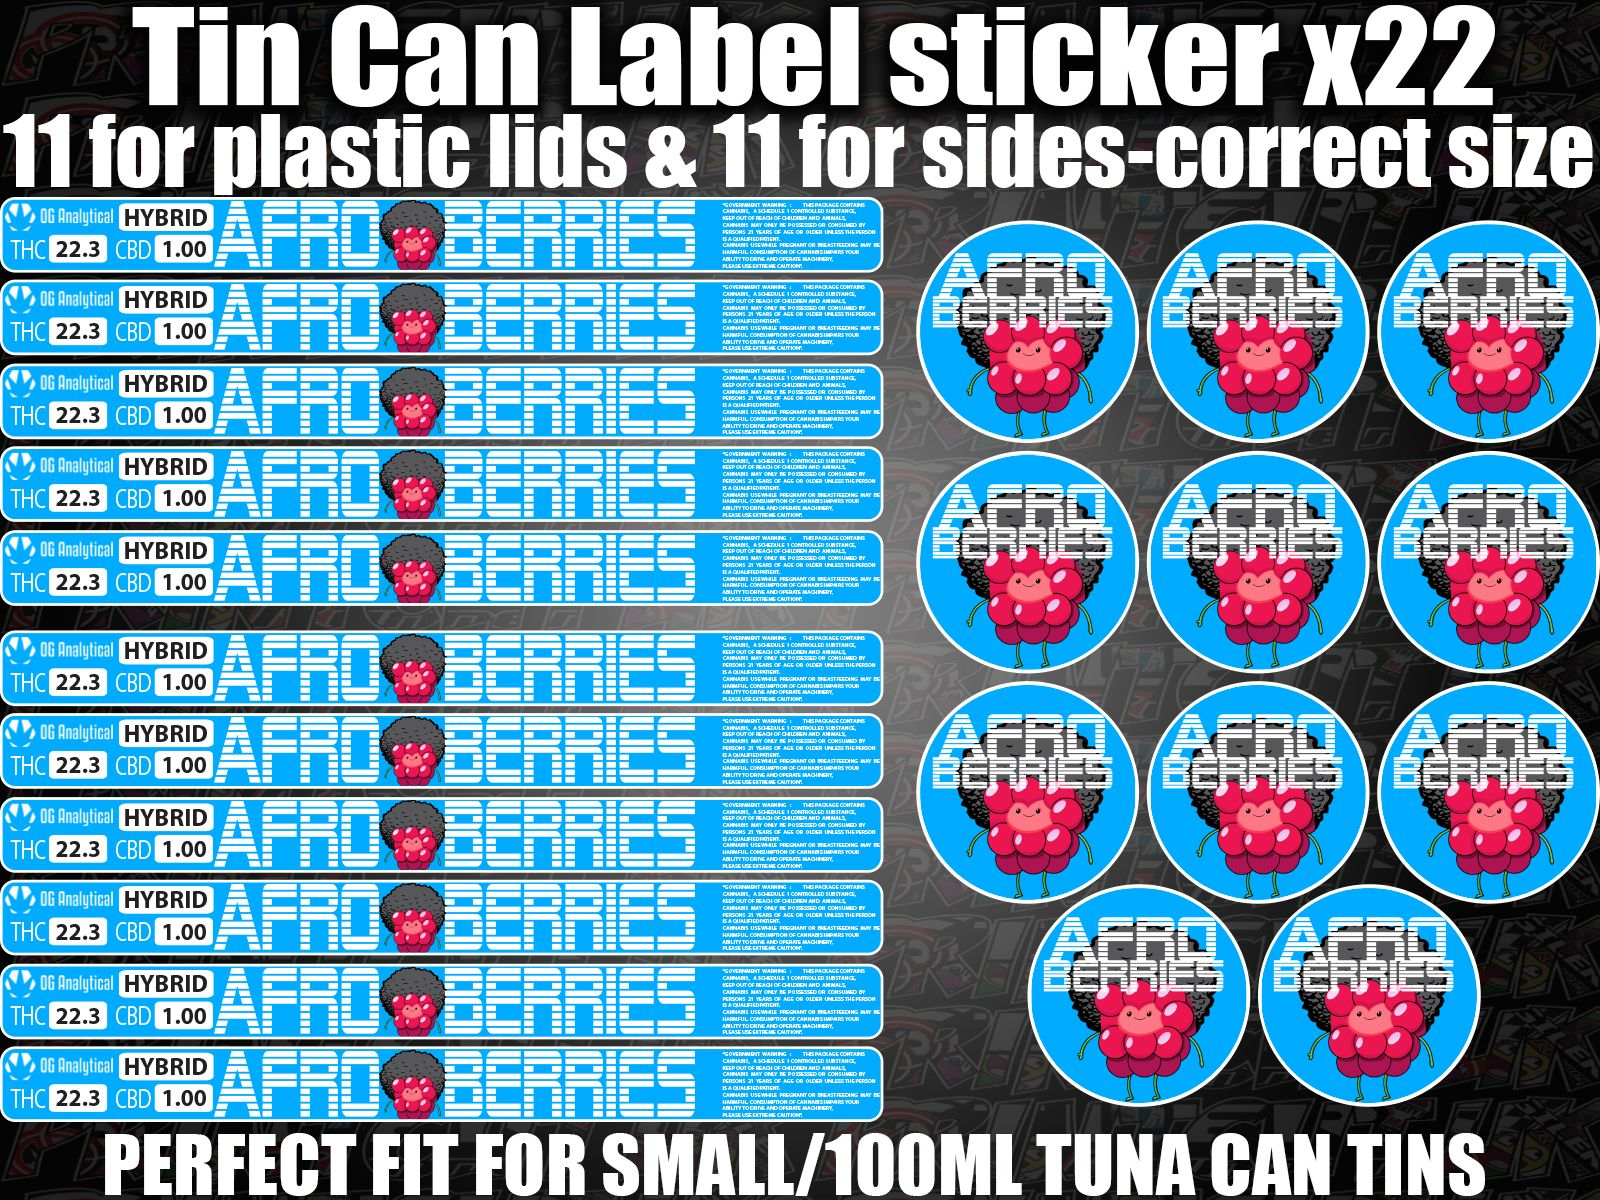 AFRO BERRIES Cali pressitin tuna Tin Labels Stickers RX Medical HIGH